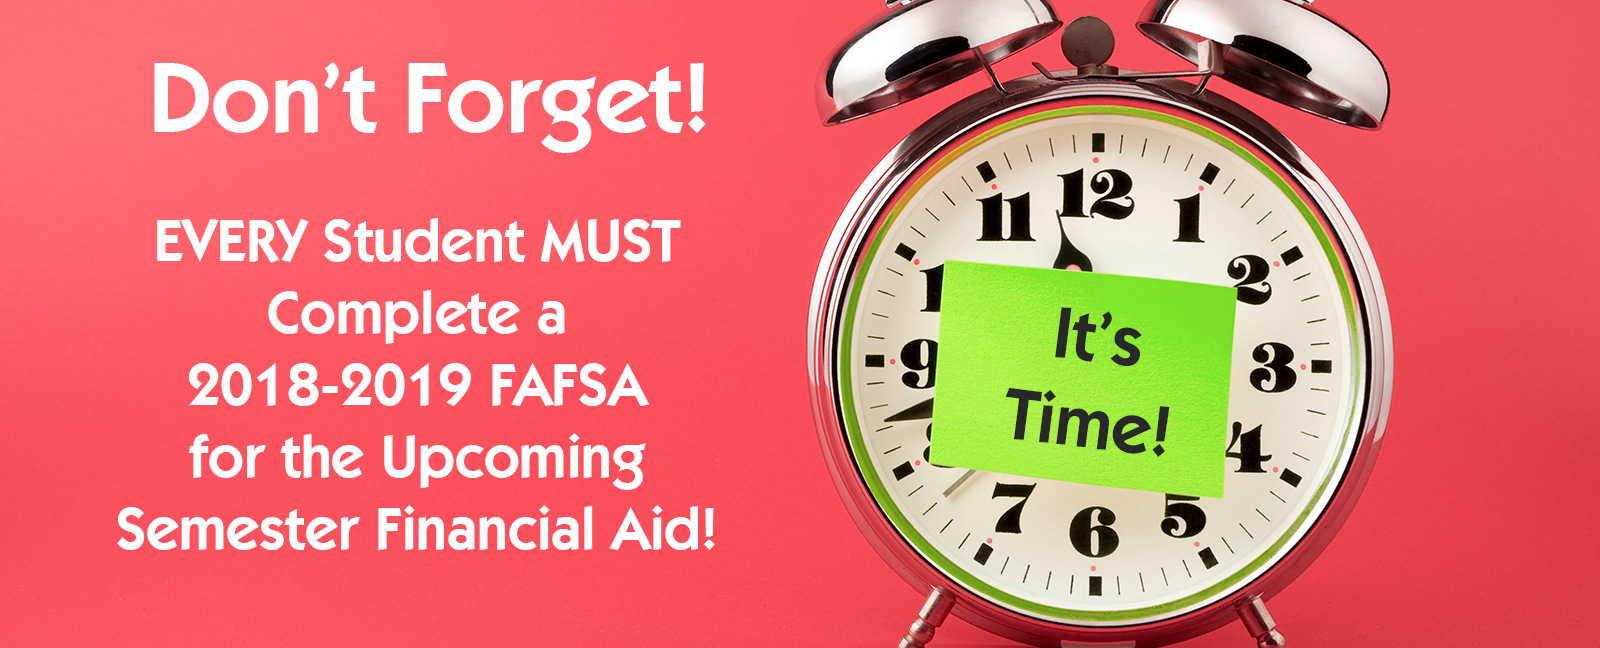 Don't forget! Every Student must Complete a 2018-2019 FAFSA for the Upcoming Semester Financial Aid.